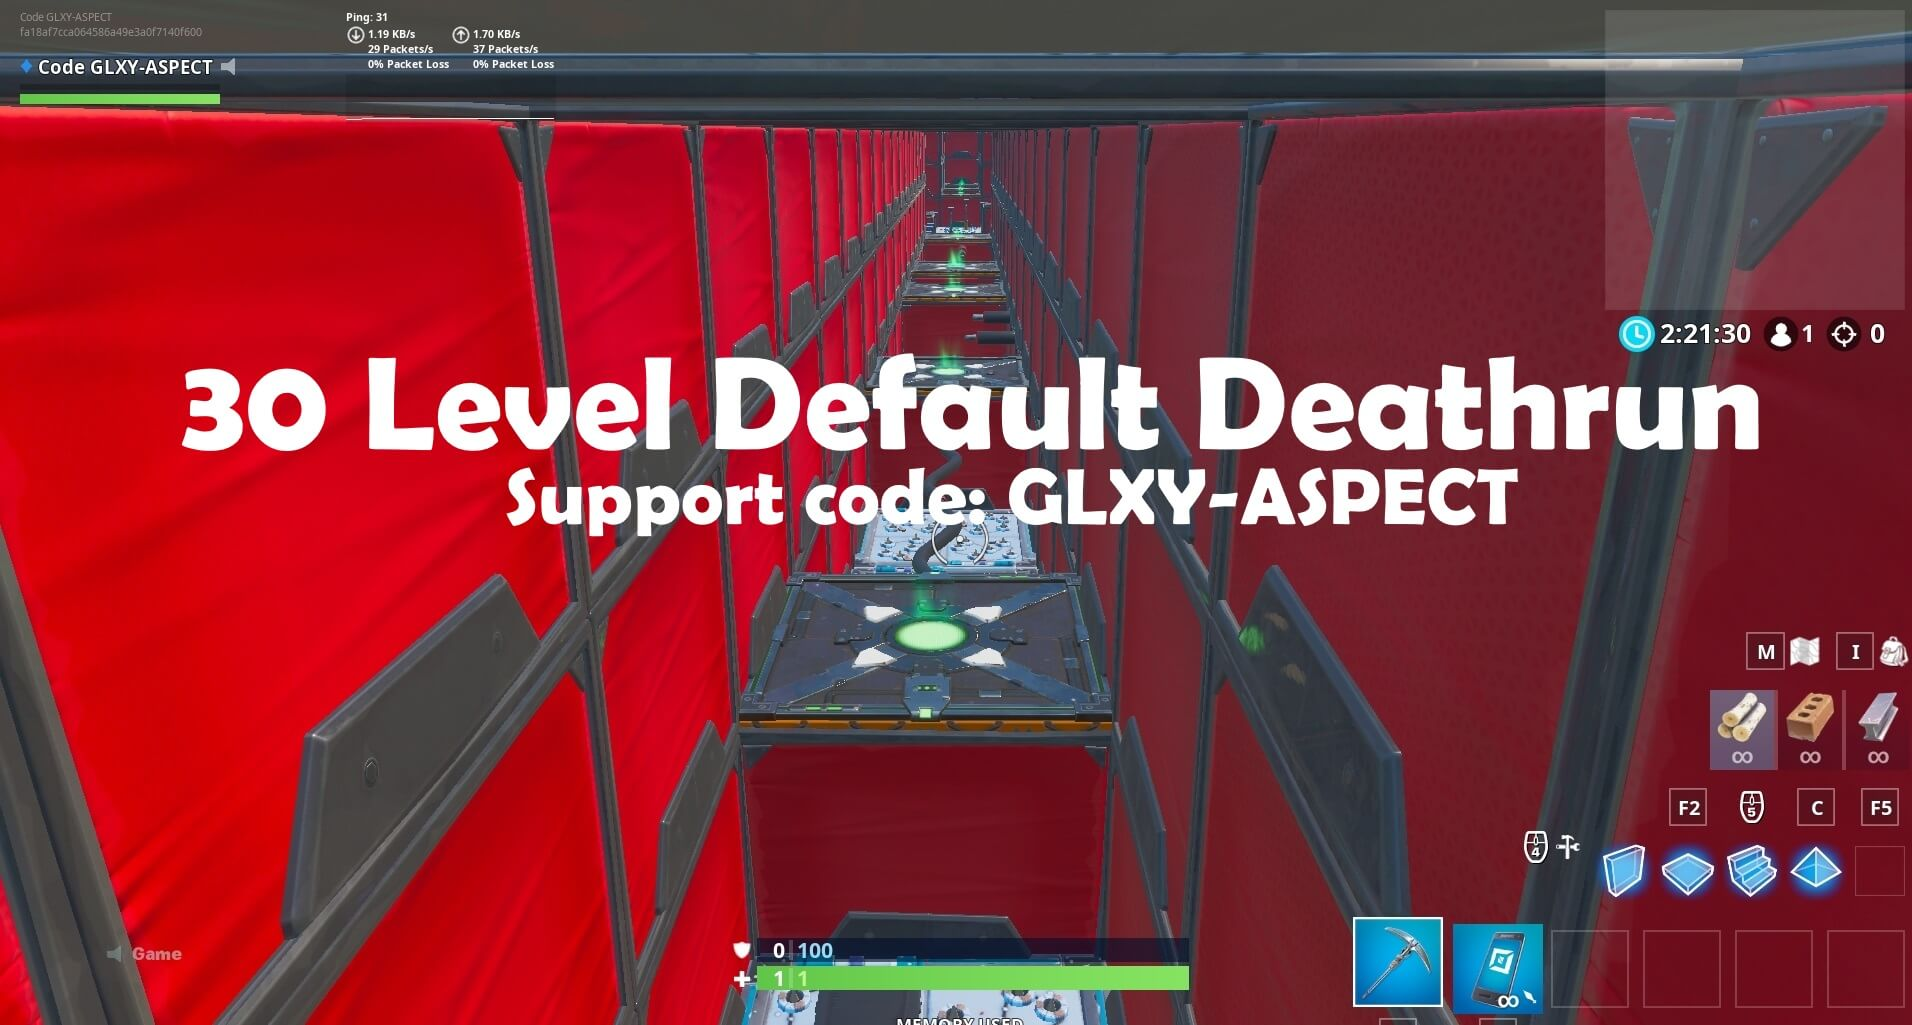 30 LEVEL DEFAULT DEATHRUN